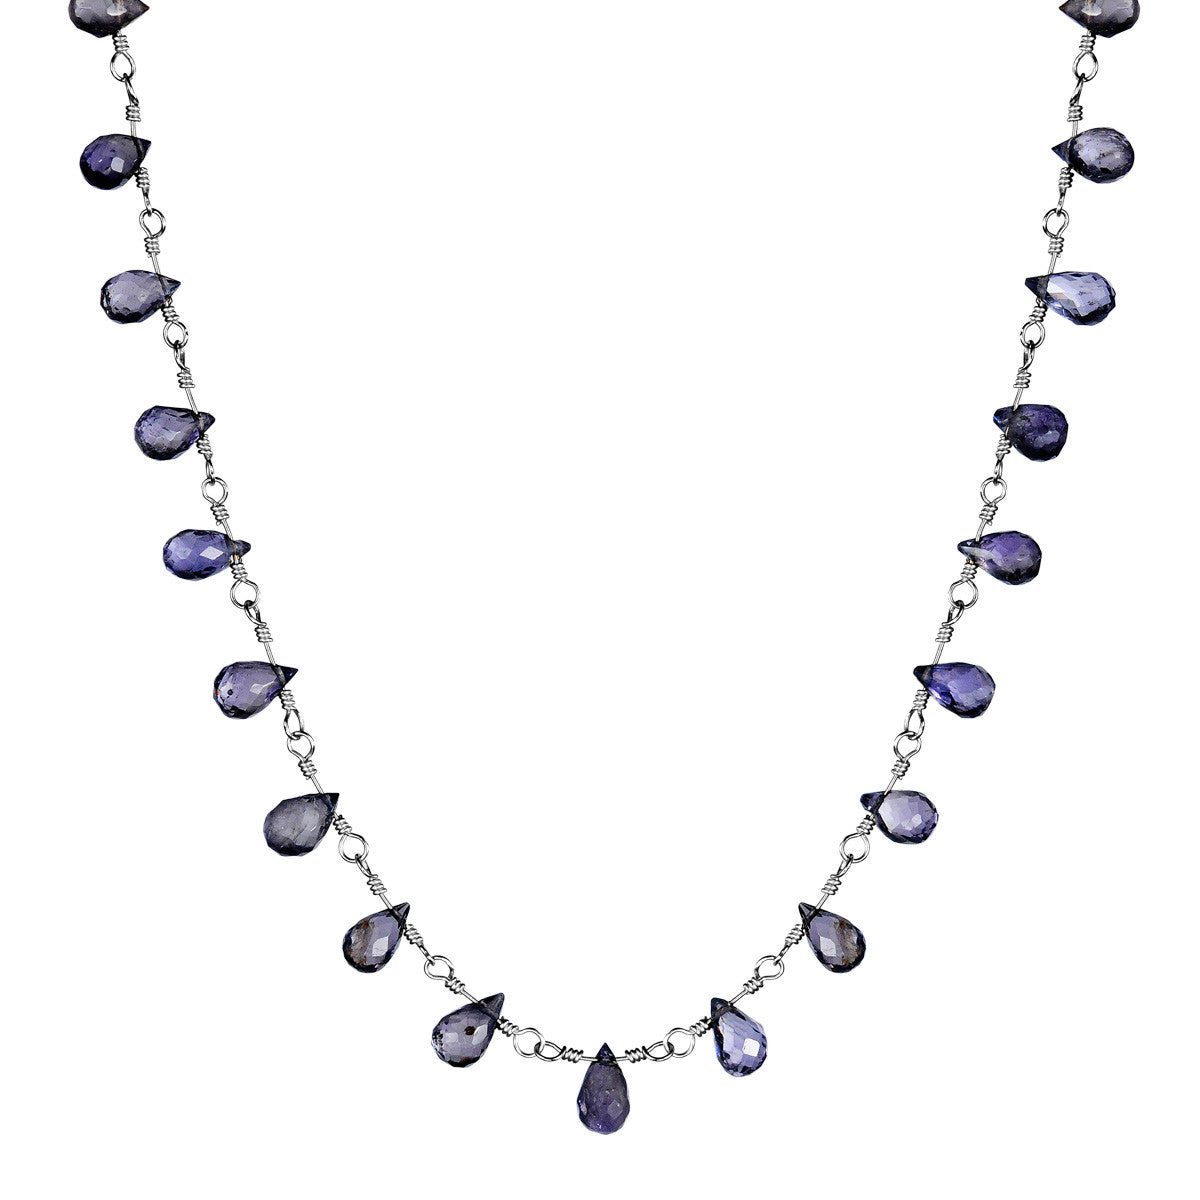 jacqueline products wedding necklace anniversary capture iolite bar ashworth bead one